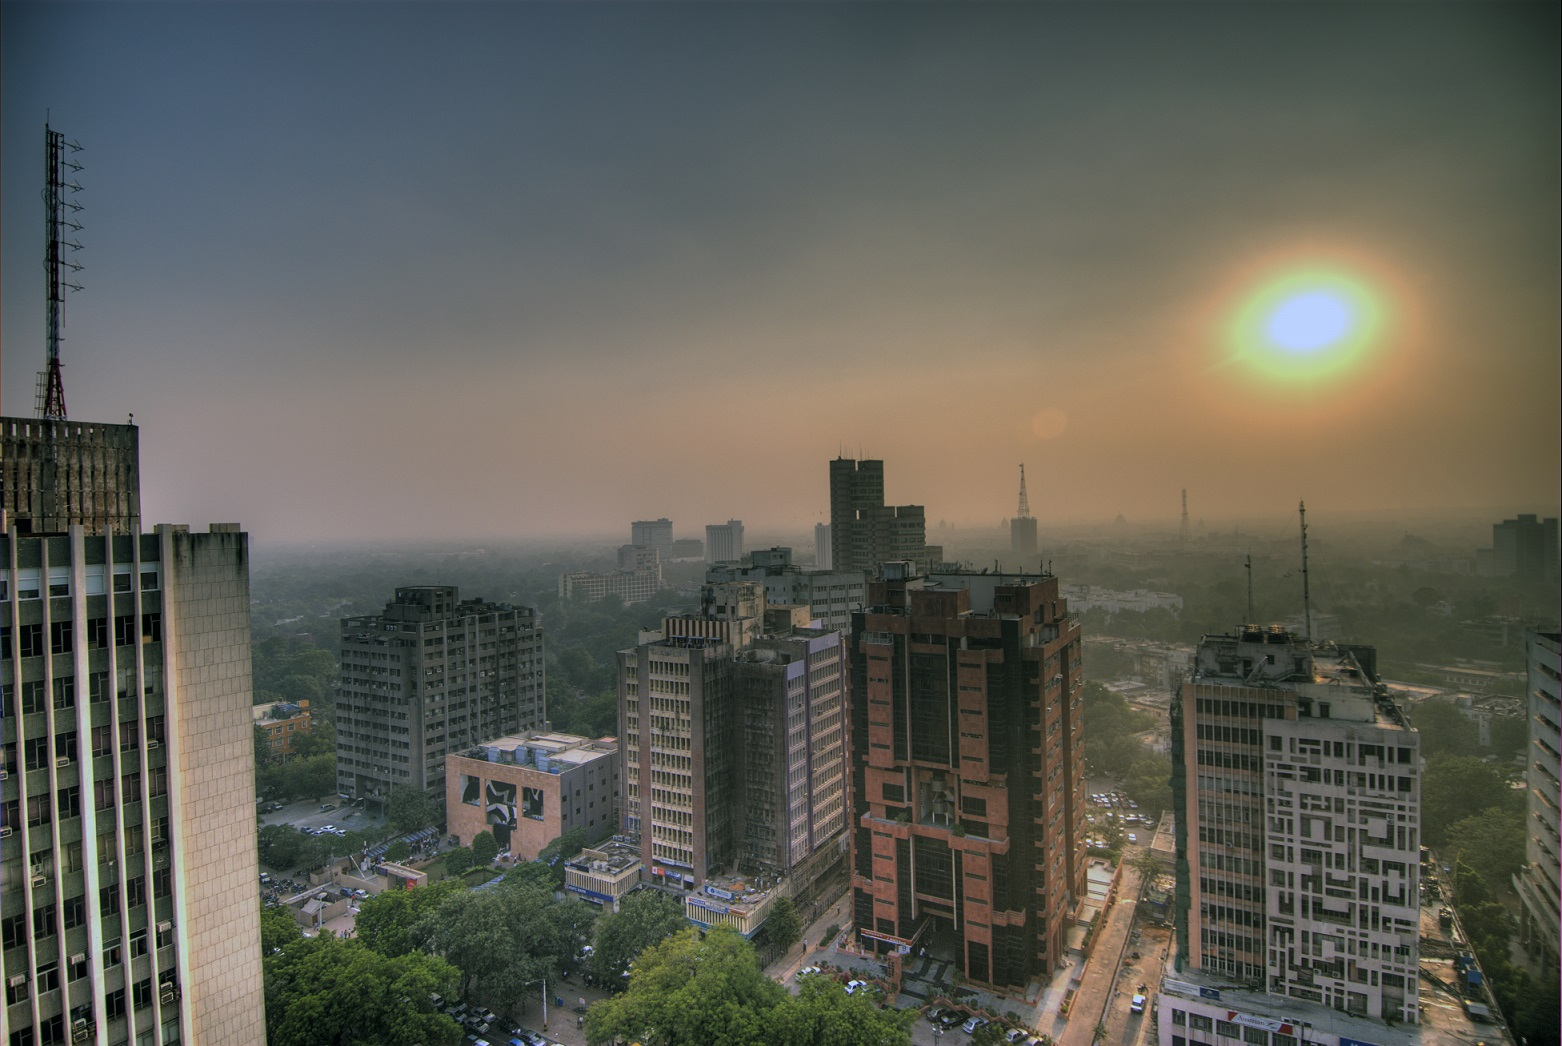 Smog_in_the_skies_of_Delhi,_India